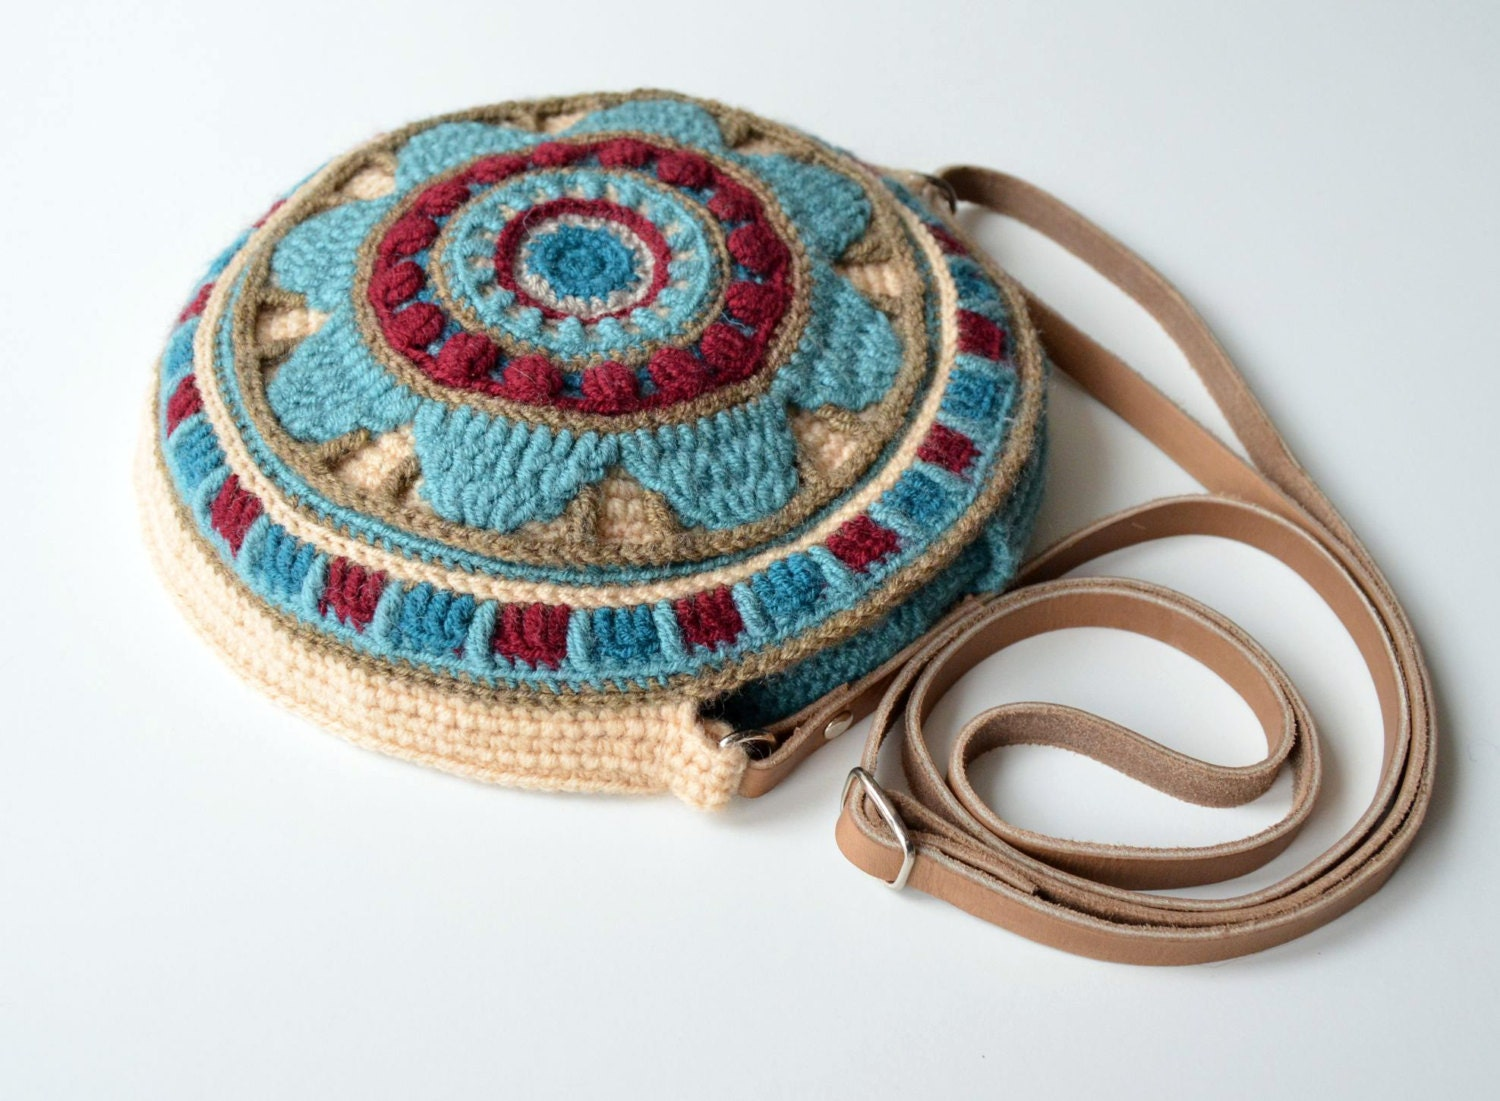 Round Bag crochet pattern overlay and by LillaBjornCrochet